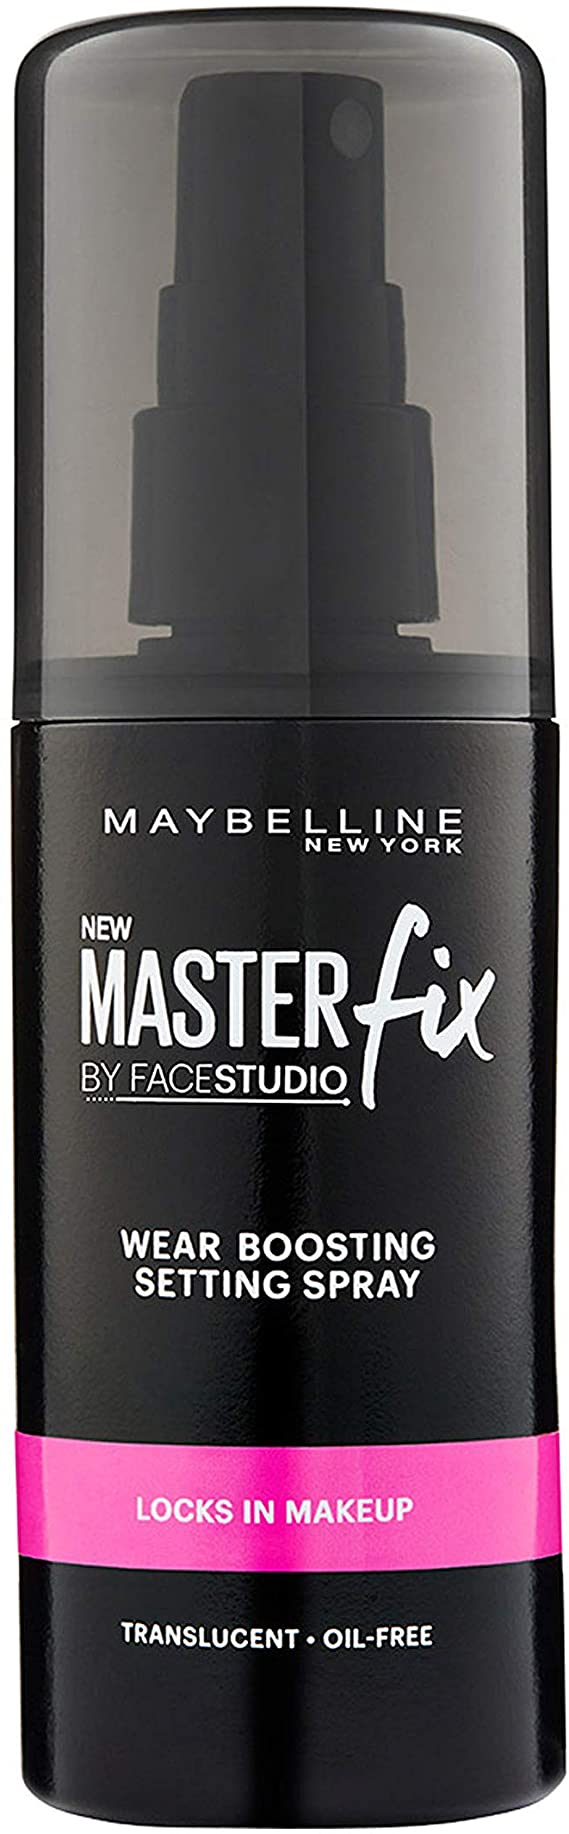 Maybelline New York Facestudio Master Fix Make Up Setting Spray 100ml